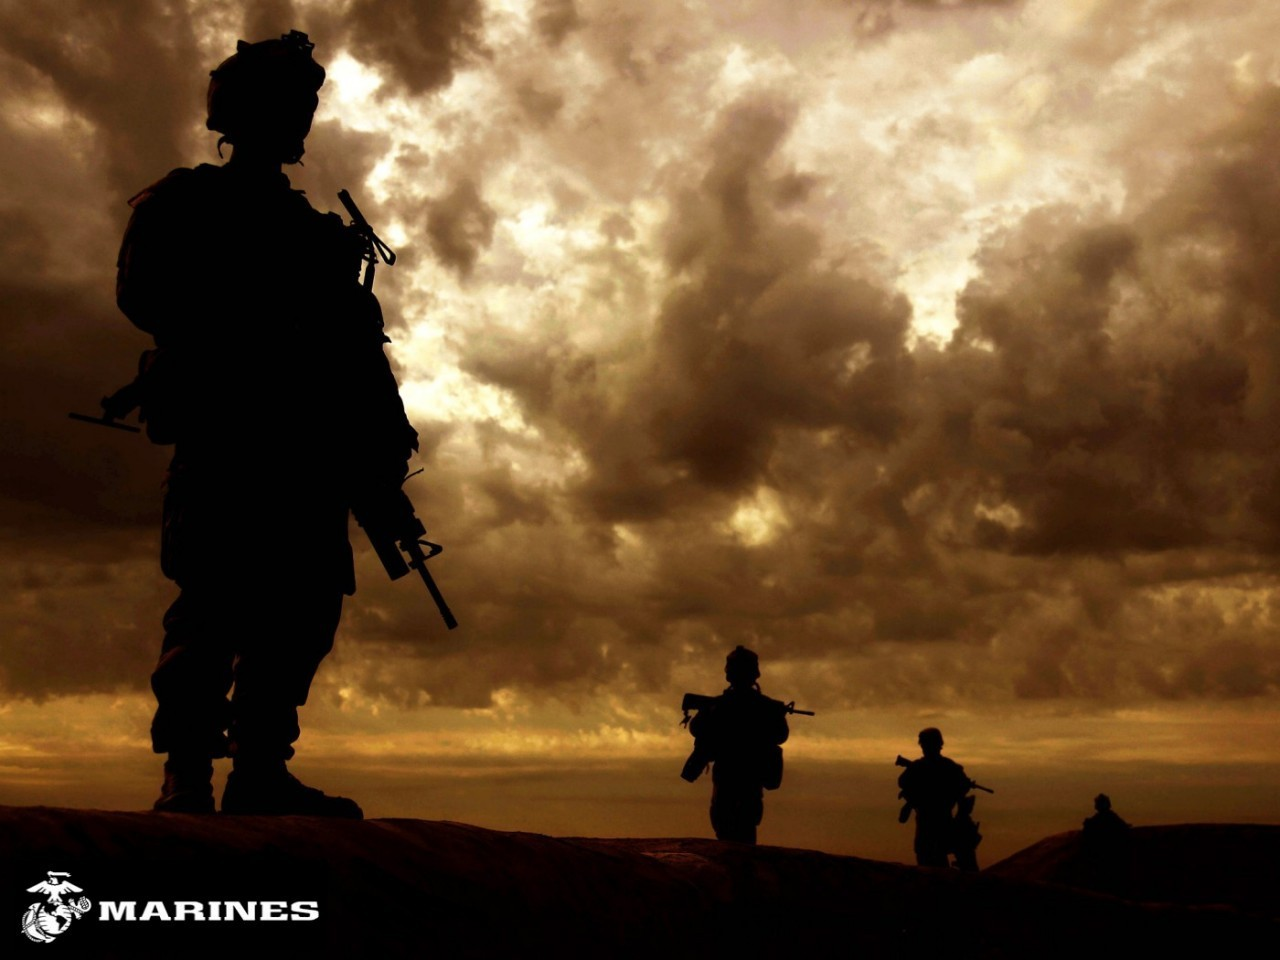 us army   Military Wallpaper 18954008 1280x960